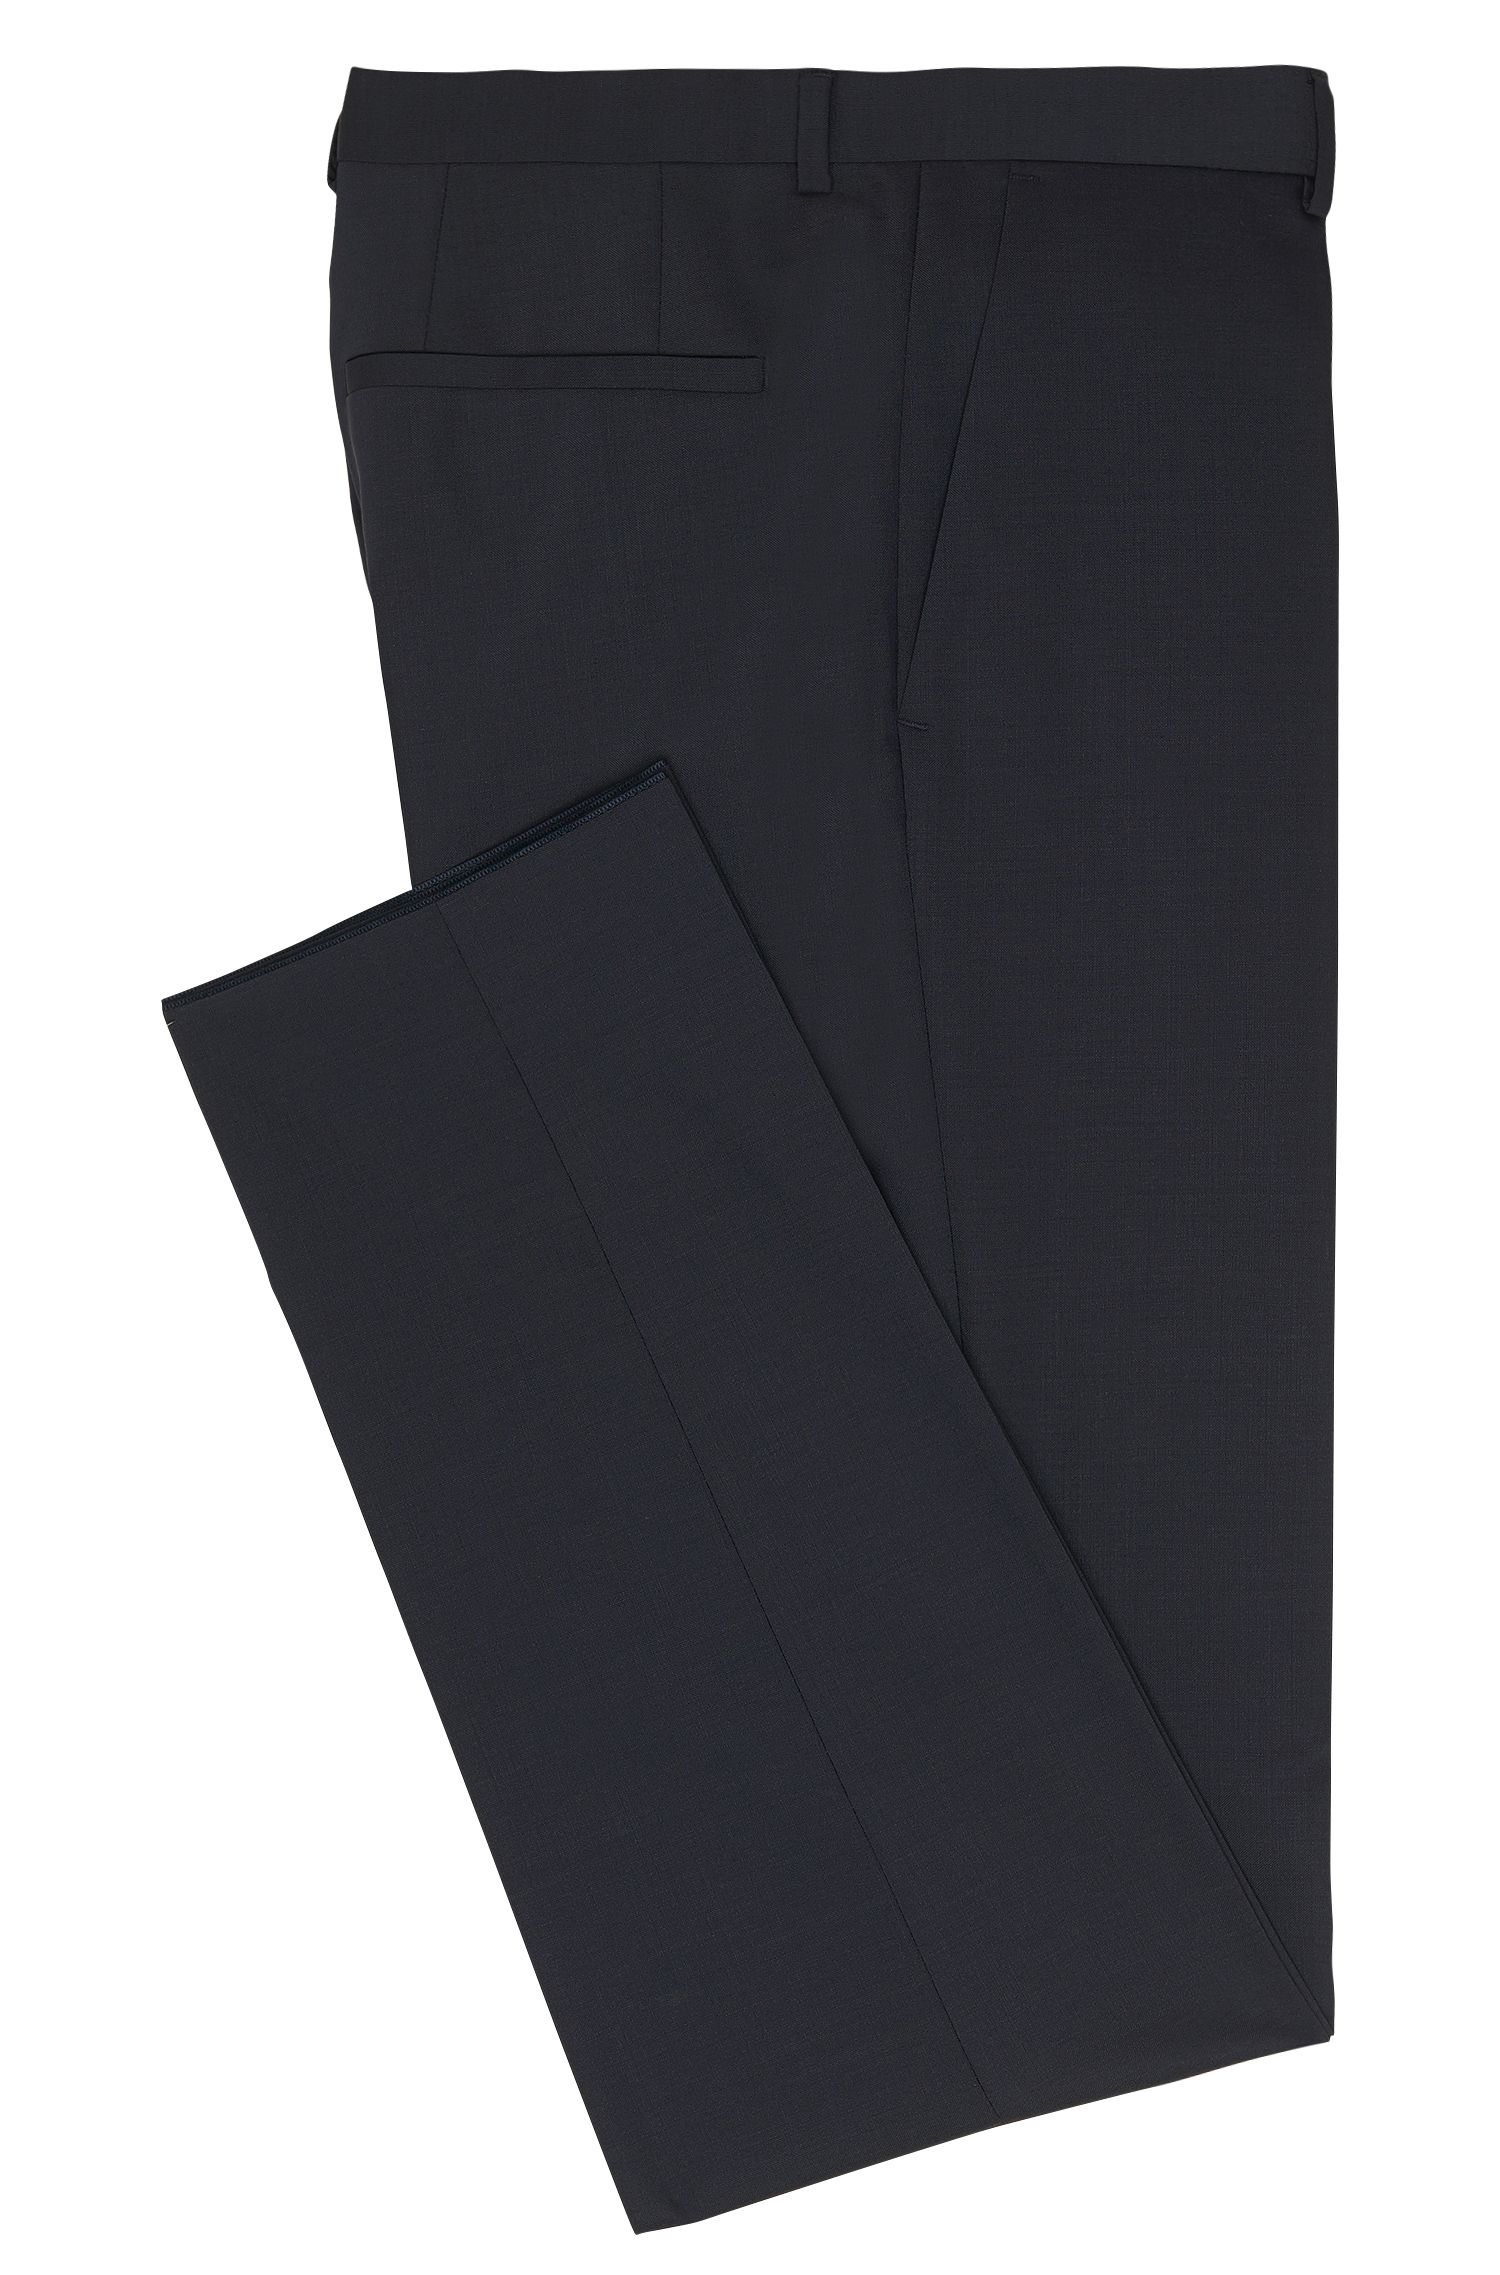 Pantaloni slim fit in lana vergine in tinta unita: 'HardyS', Blu scuro